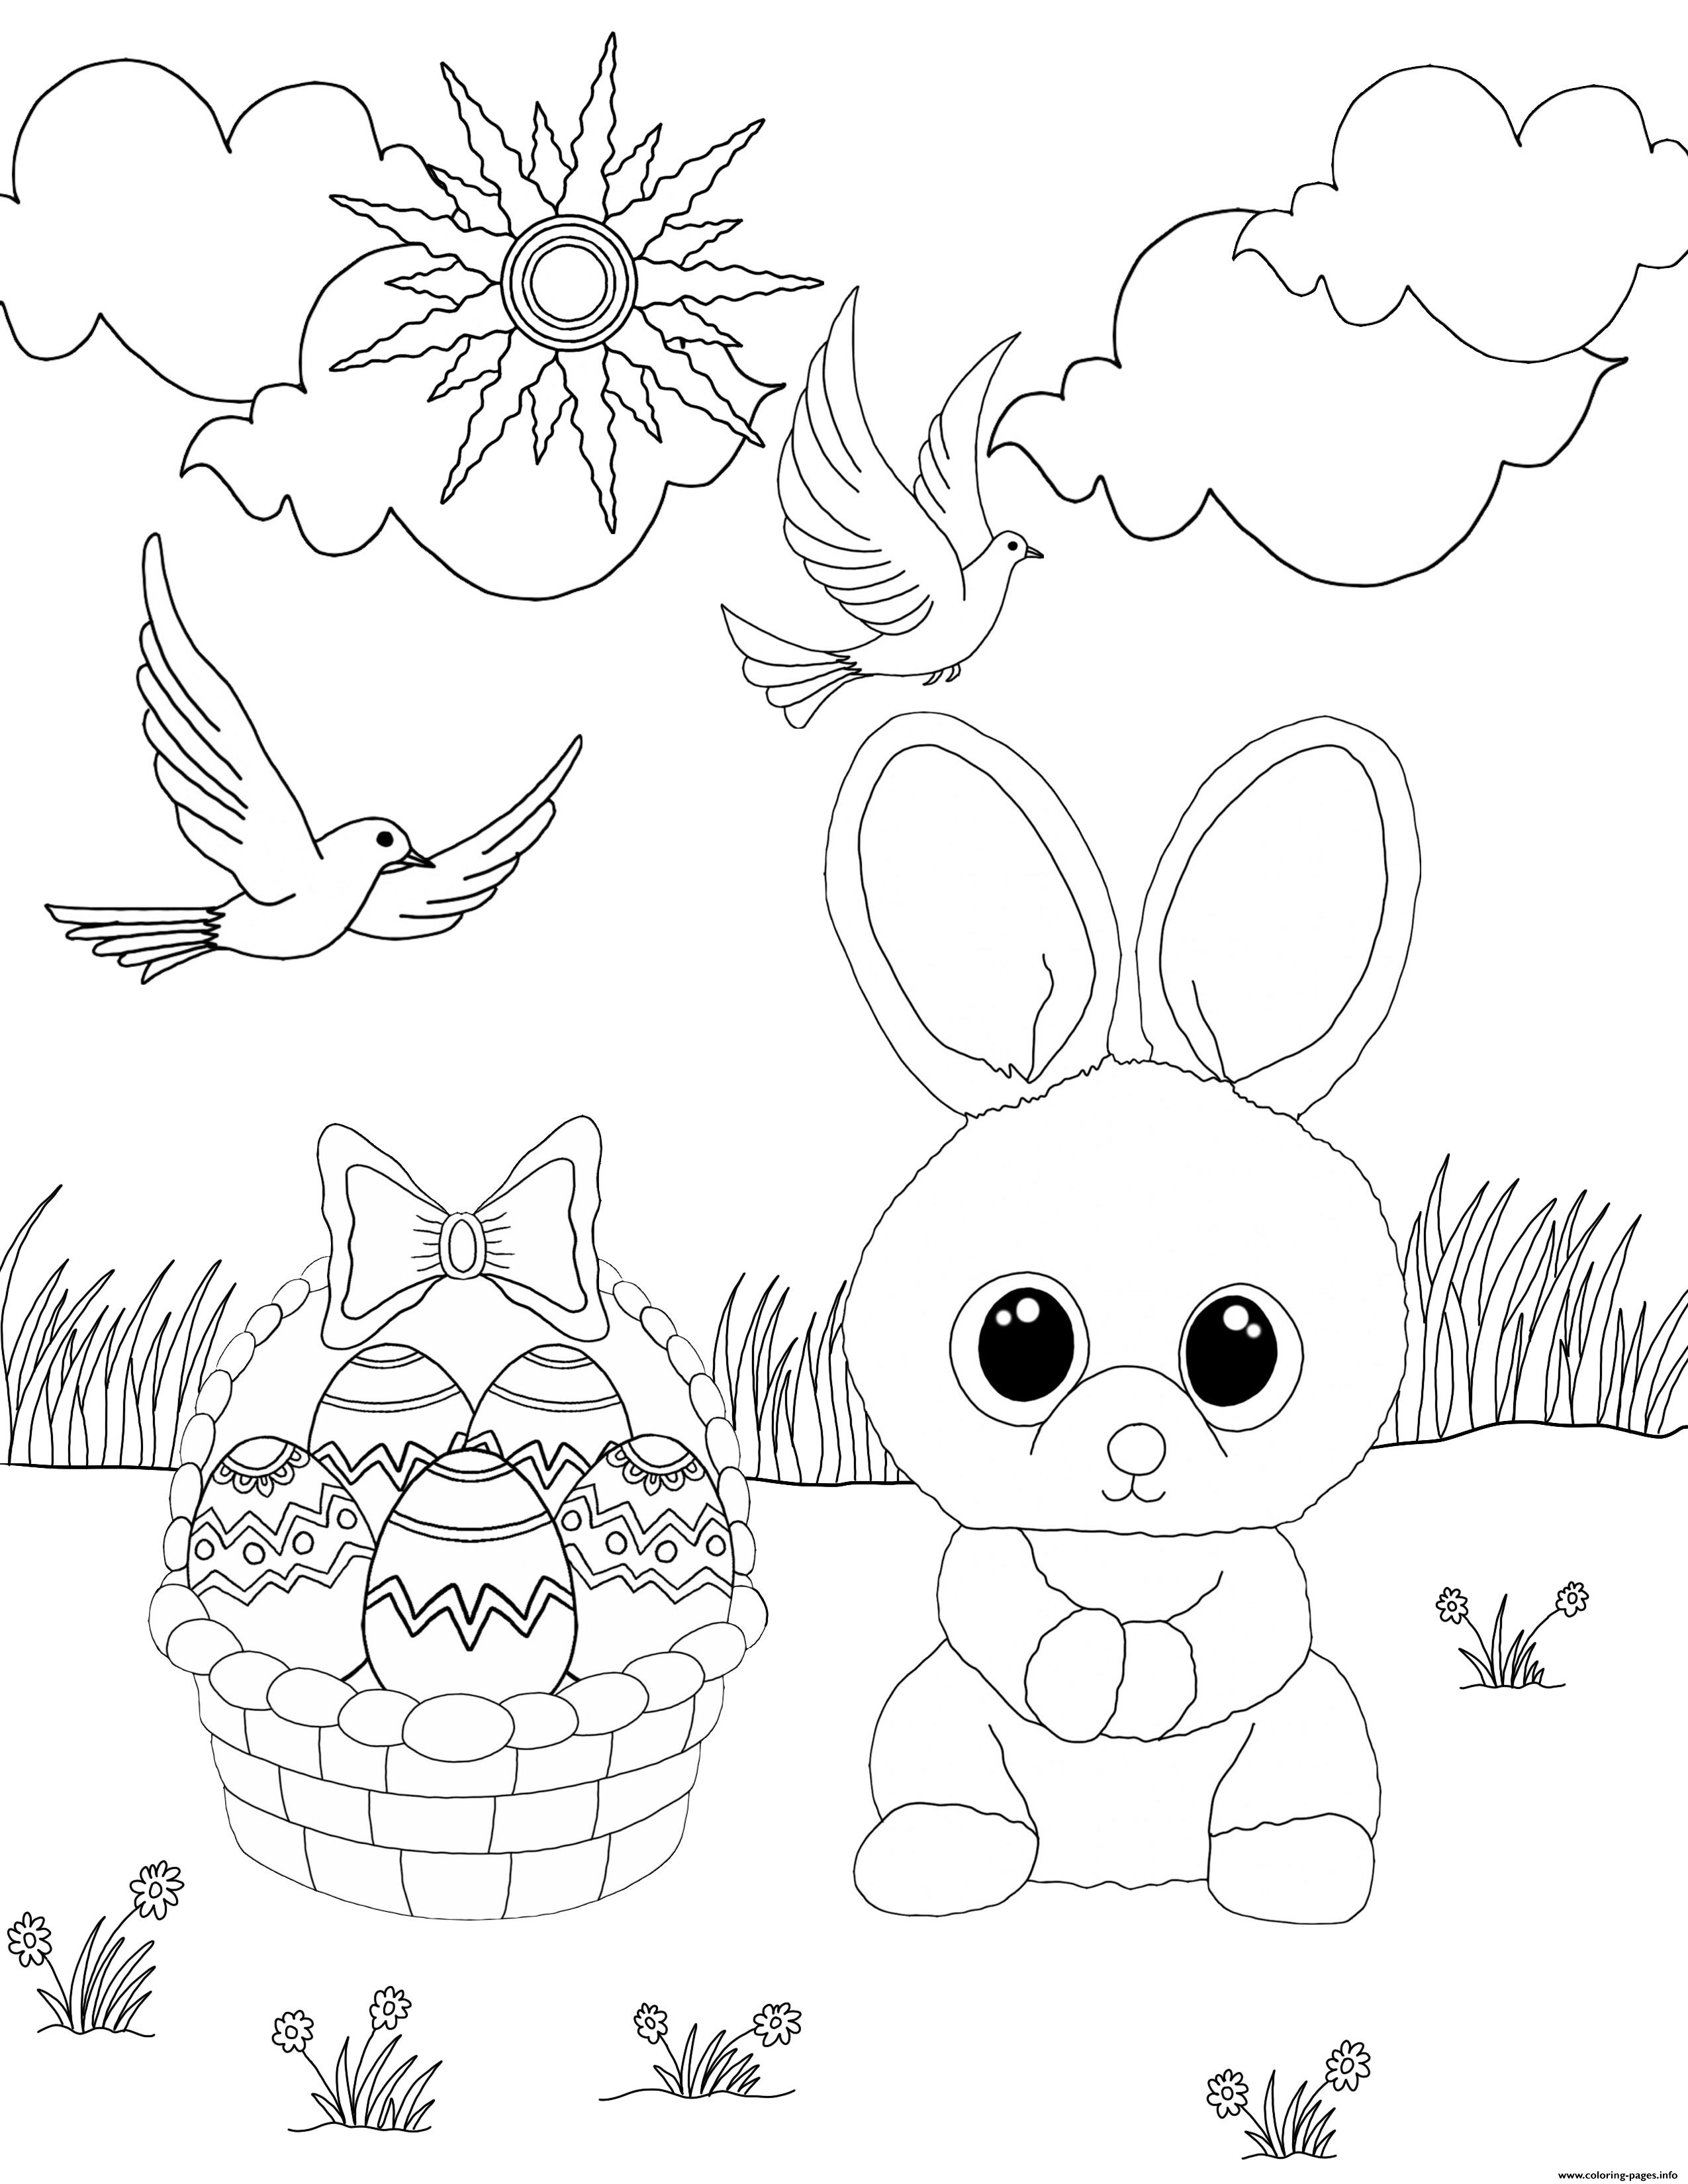 Beanie Boo Easter Eggs Rabbit Coloring Pages Printable